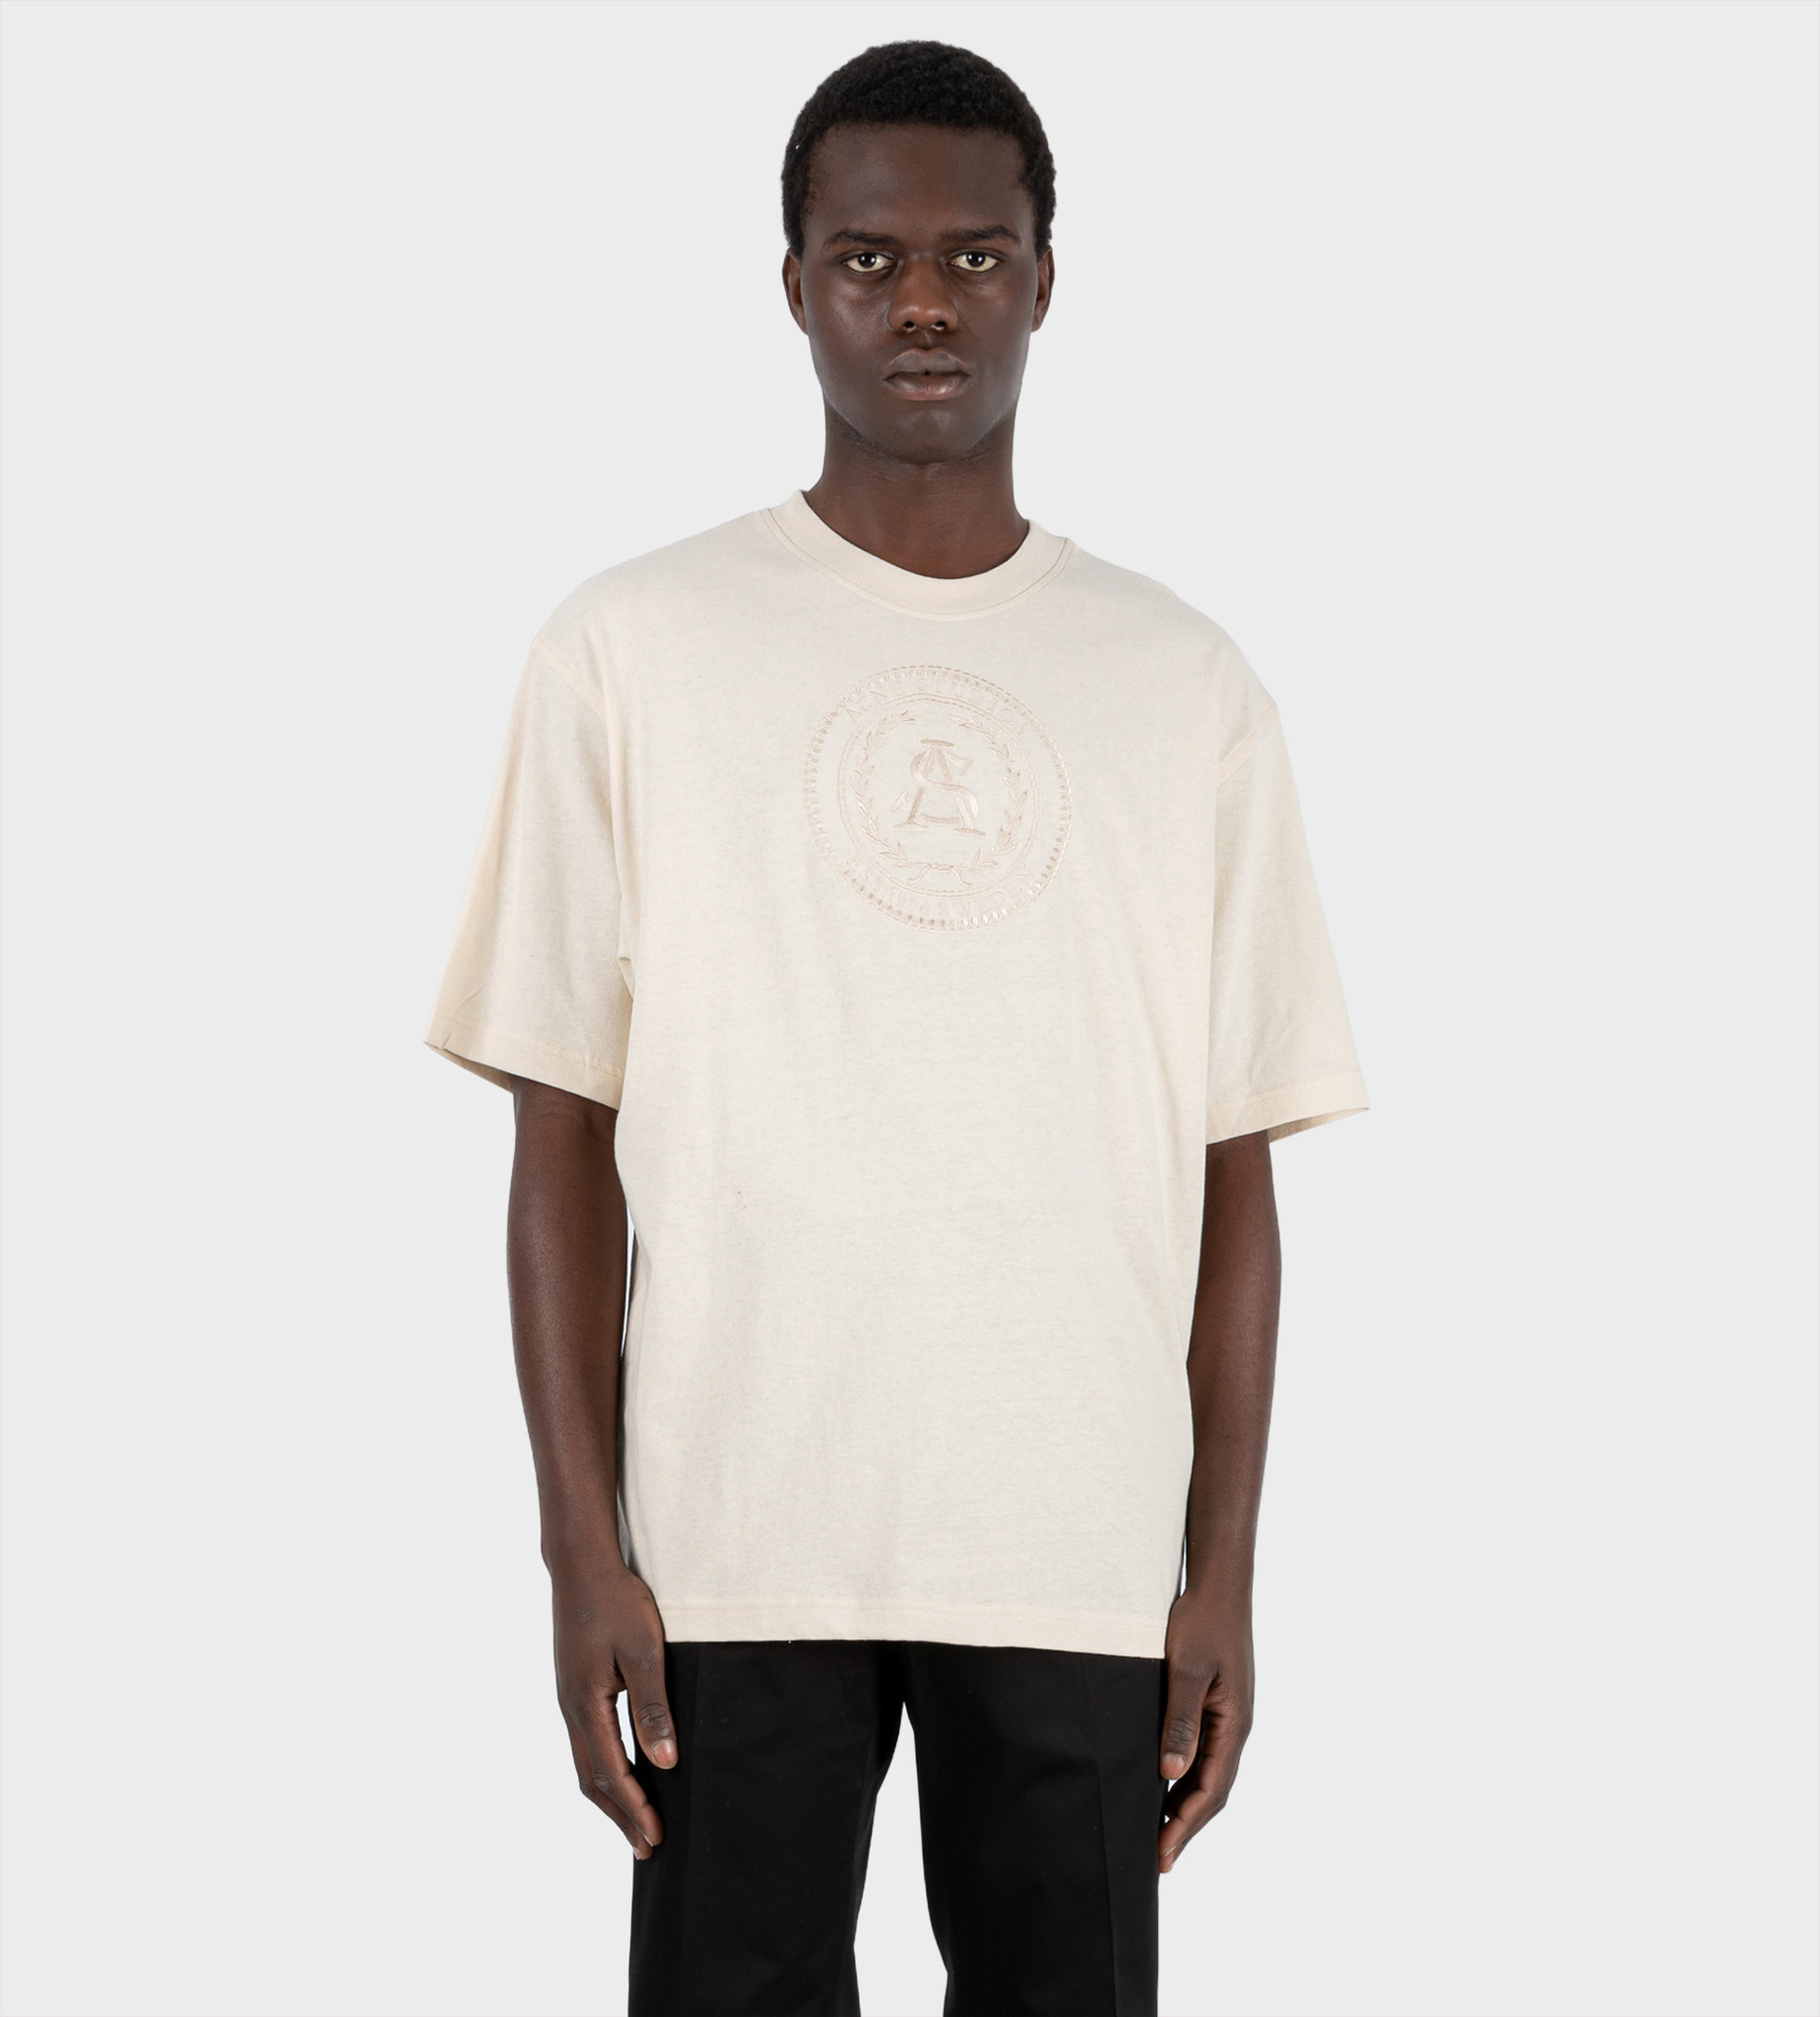 ACNE STUDIOS Embroidered T-shirt Coconut White